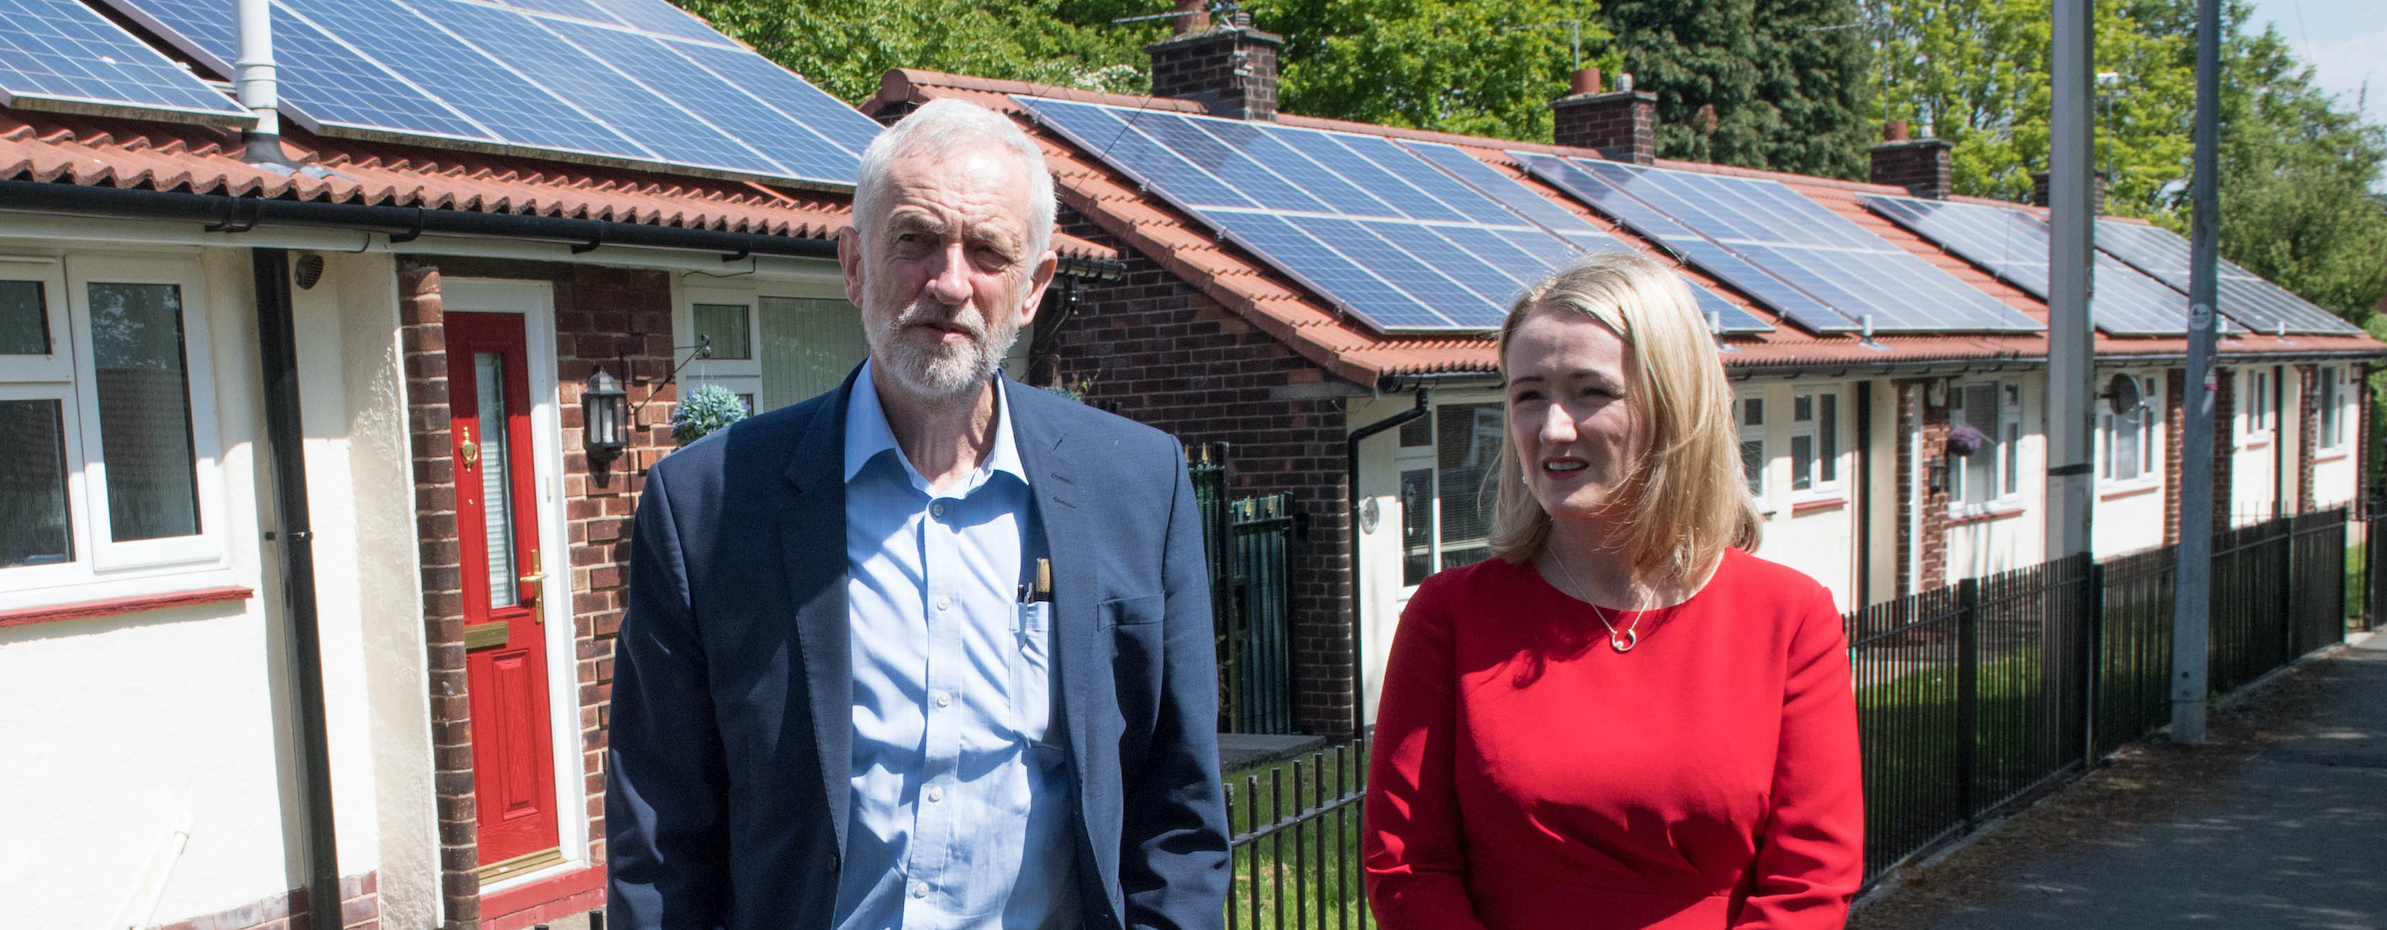 Jeremy Corbyn and Rebecca-Long Bailey